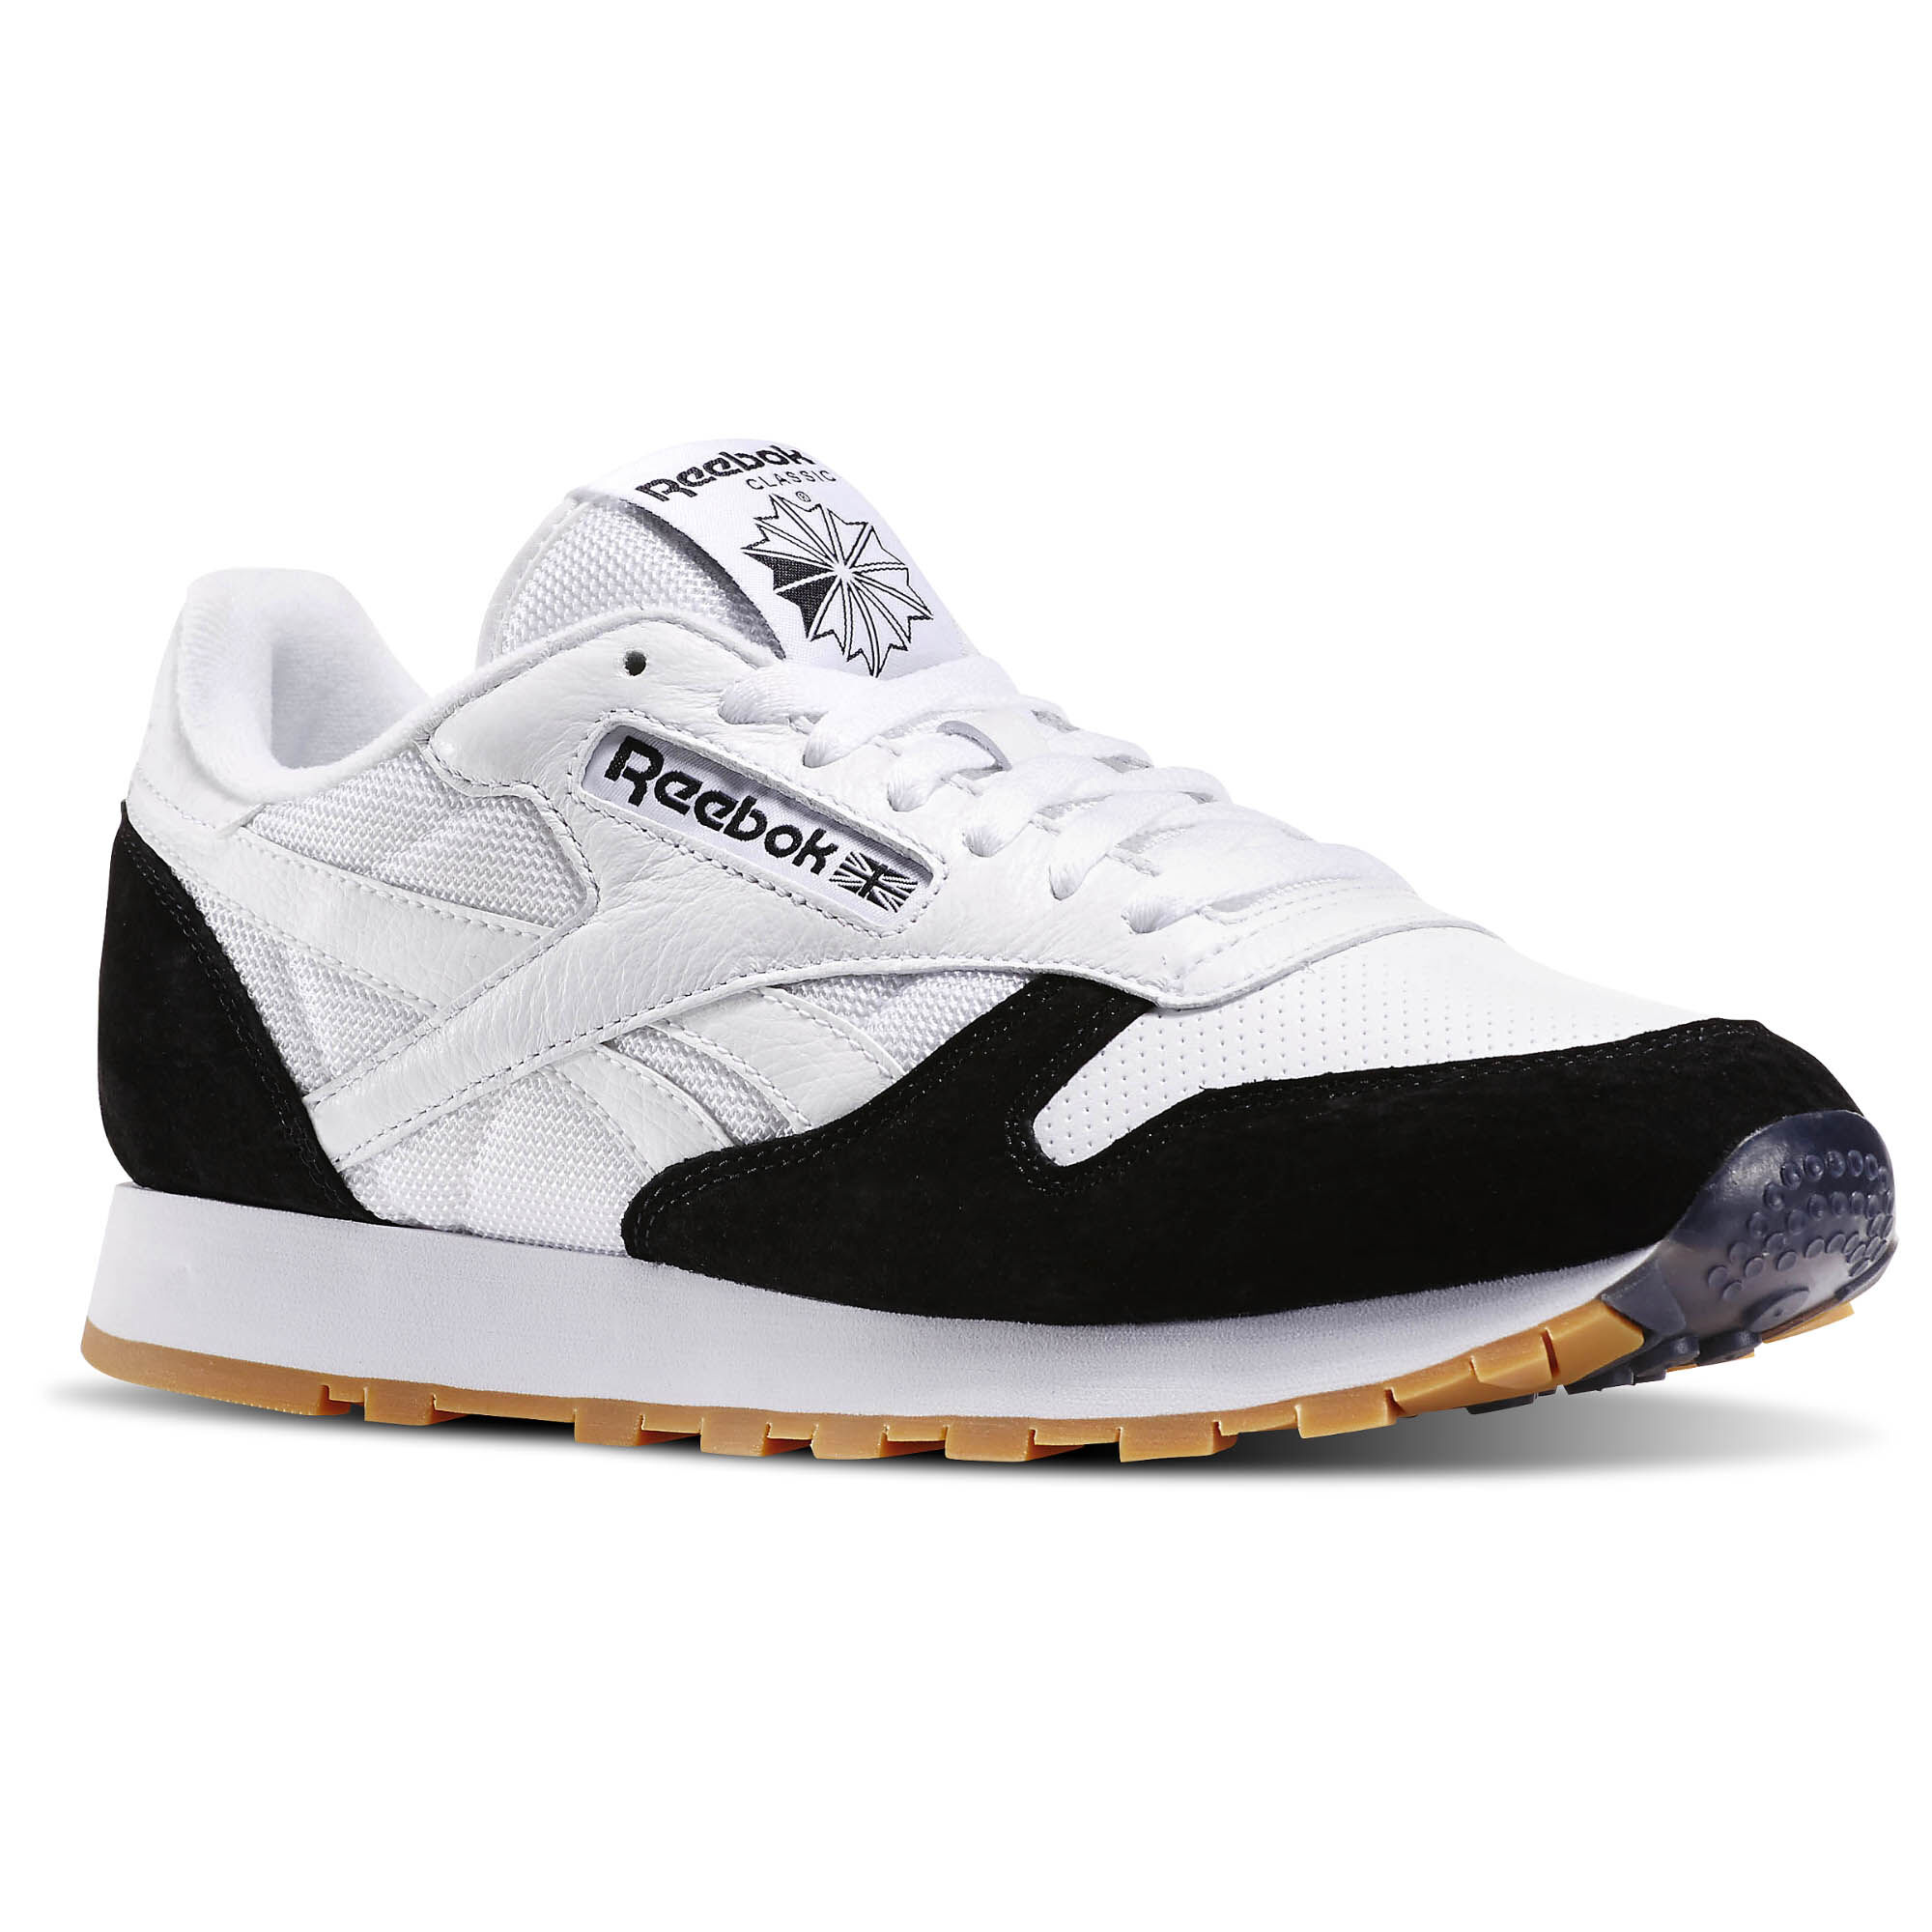 a8b3bb1ae39 old style reebok shoes cheap   OFF56% The Largest Catalog Discounts